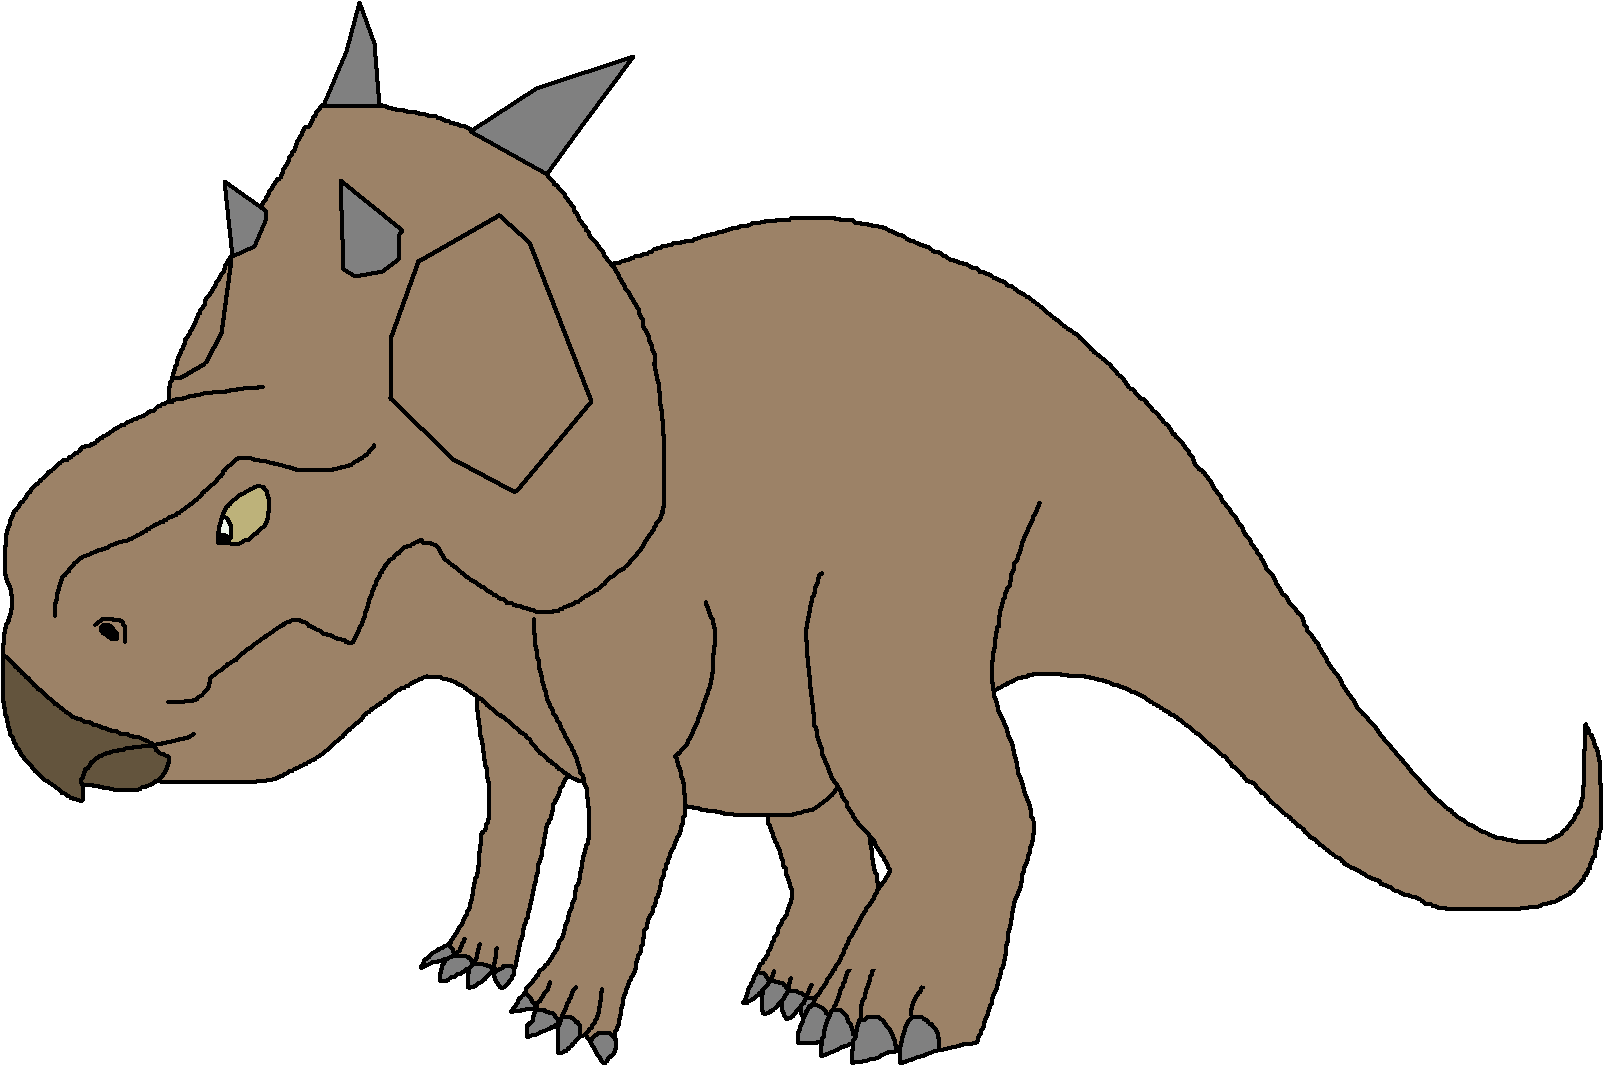 Download hd dinosaur at. Fossil clipart dino fossil picture download